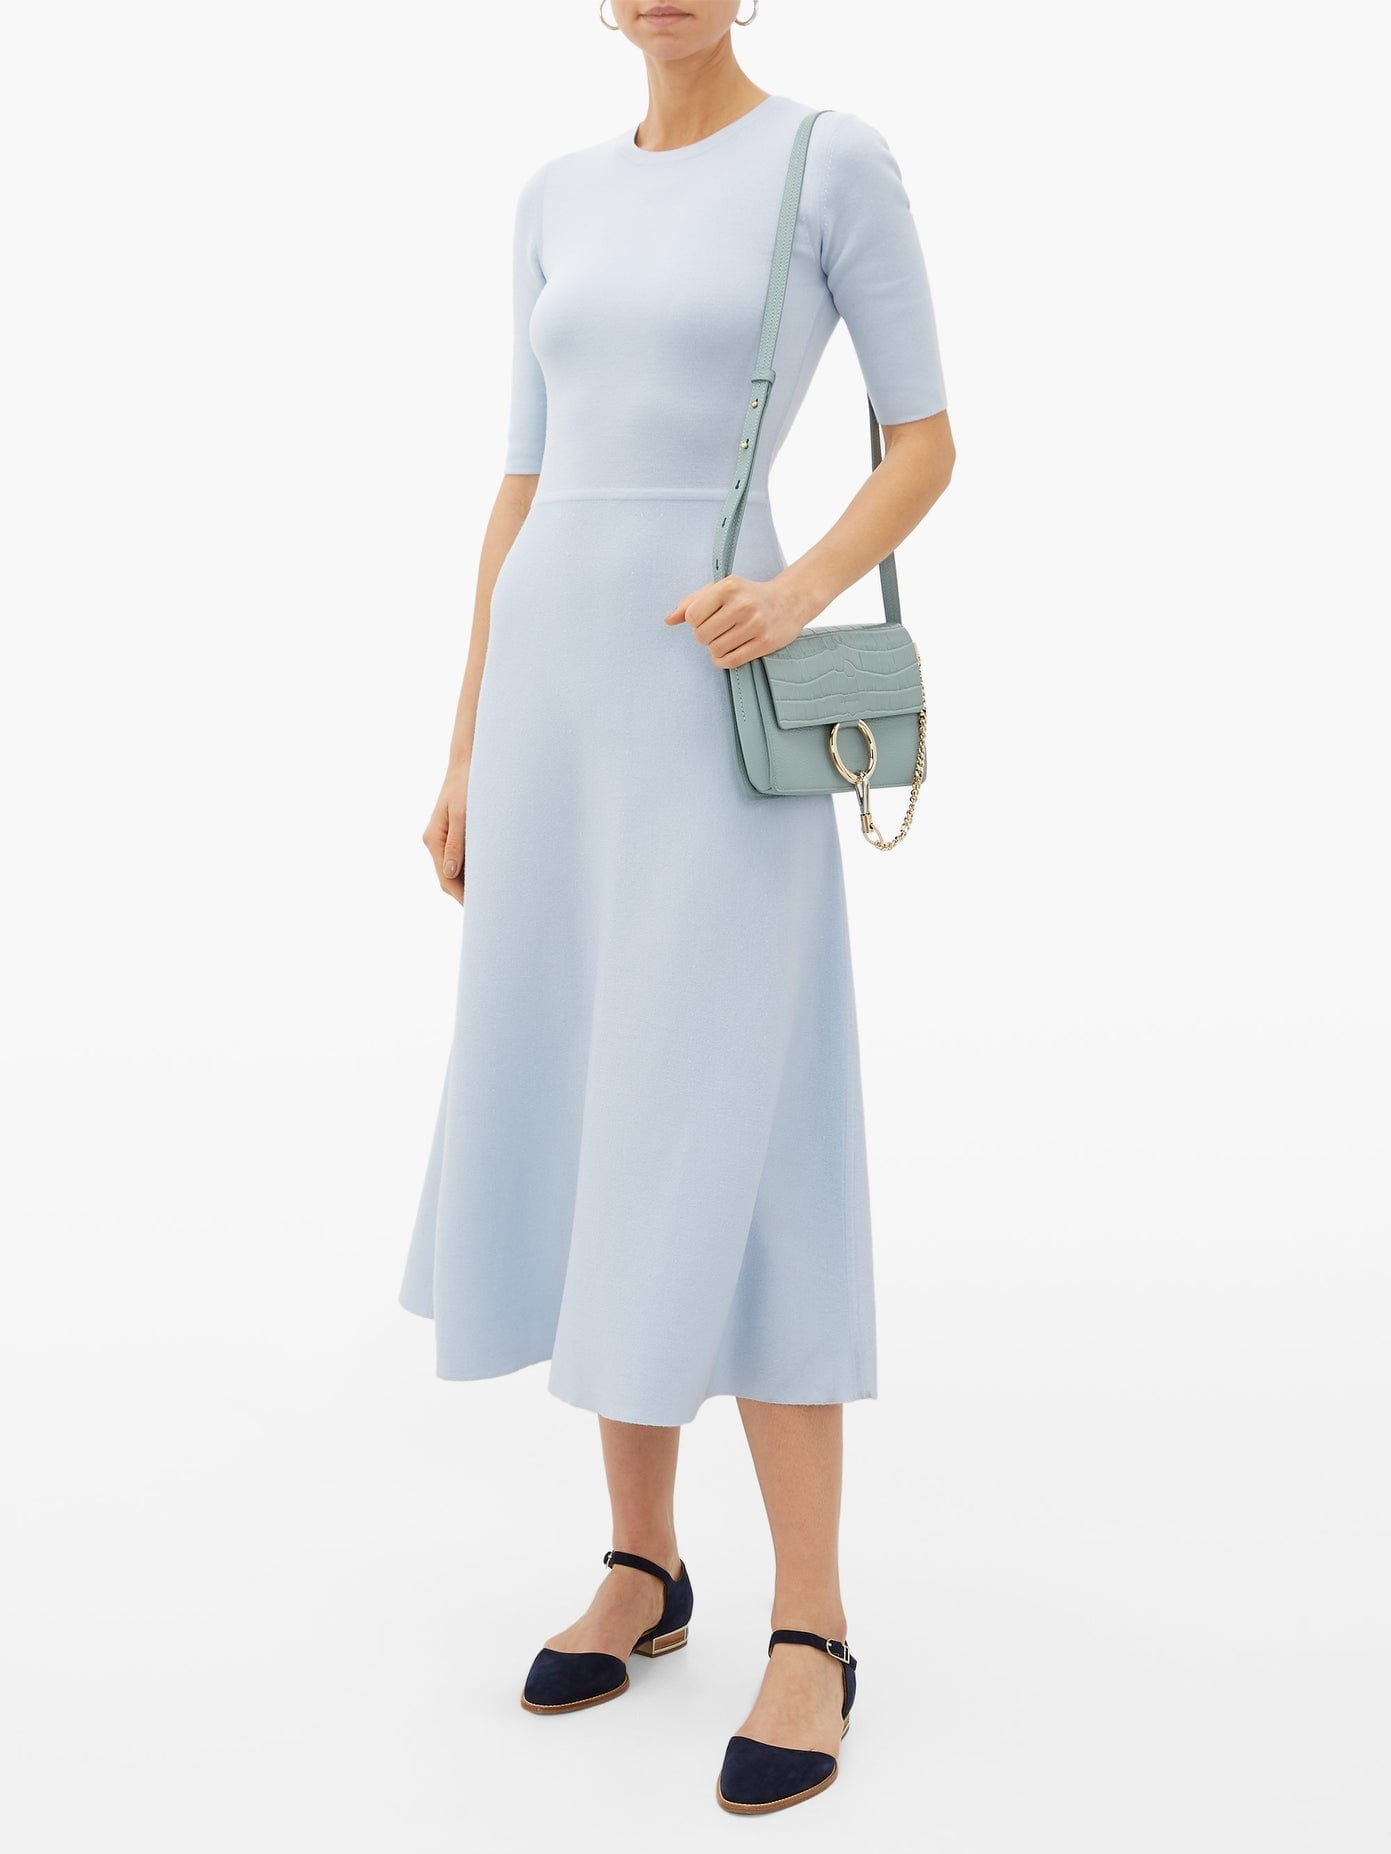 GABRIELA HEARST Seymore Wool And Cashmere-Blend Midi Dress